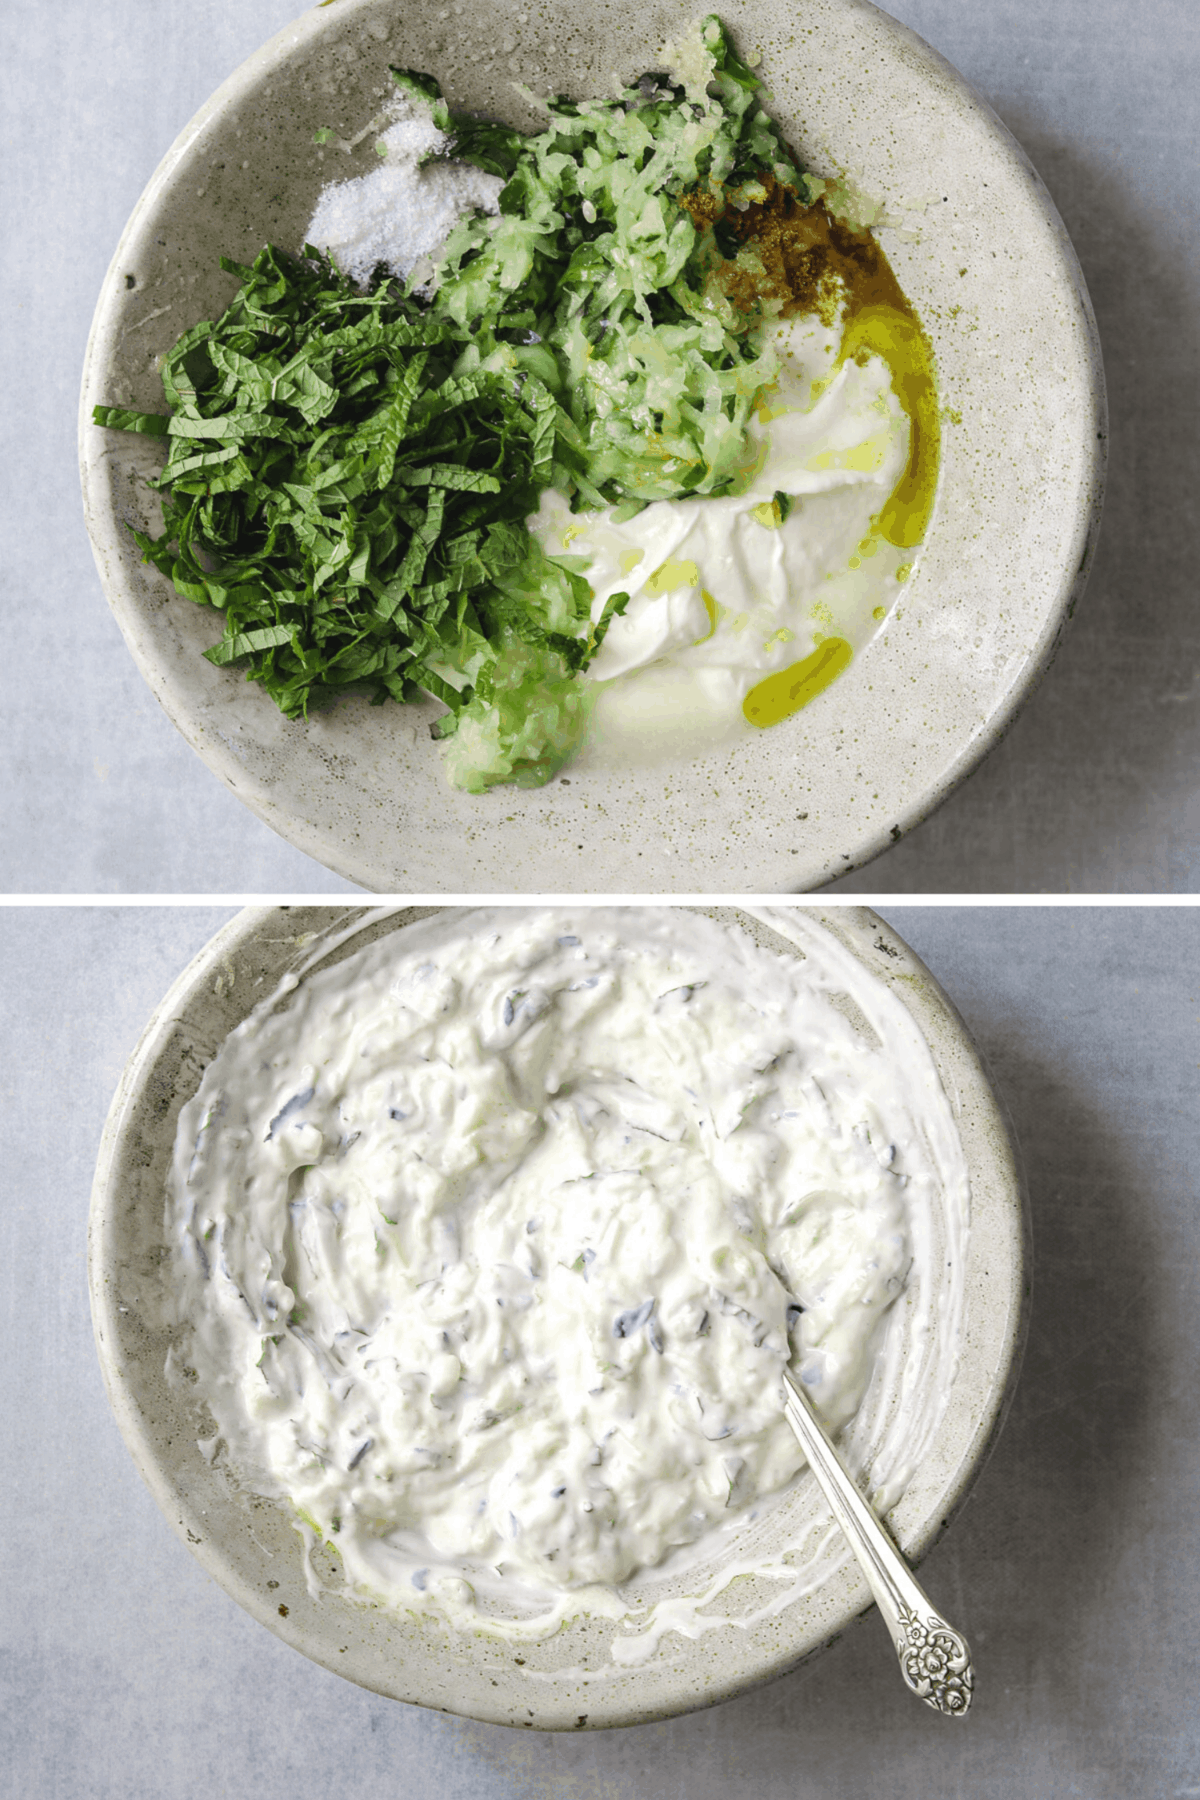 yogurt, grated cucumber, and chopped mint in a small ceramic bowl and a bowl of cucumber raita